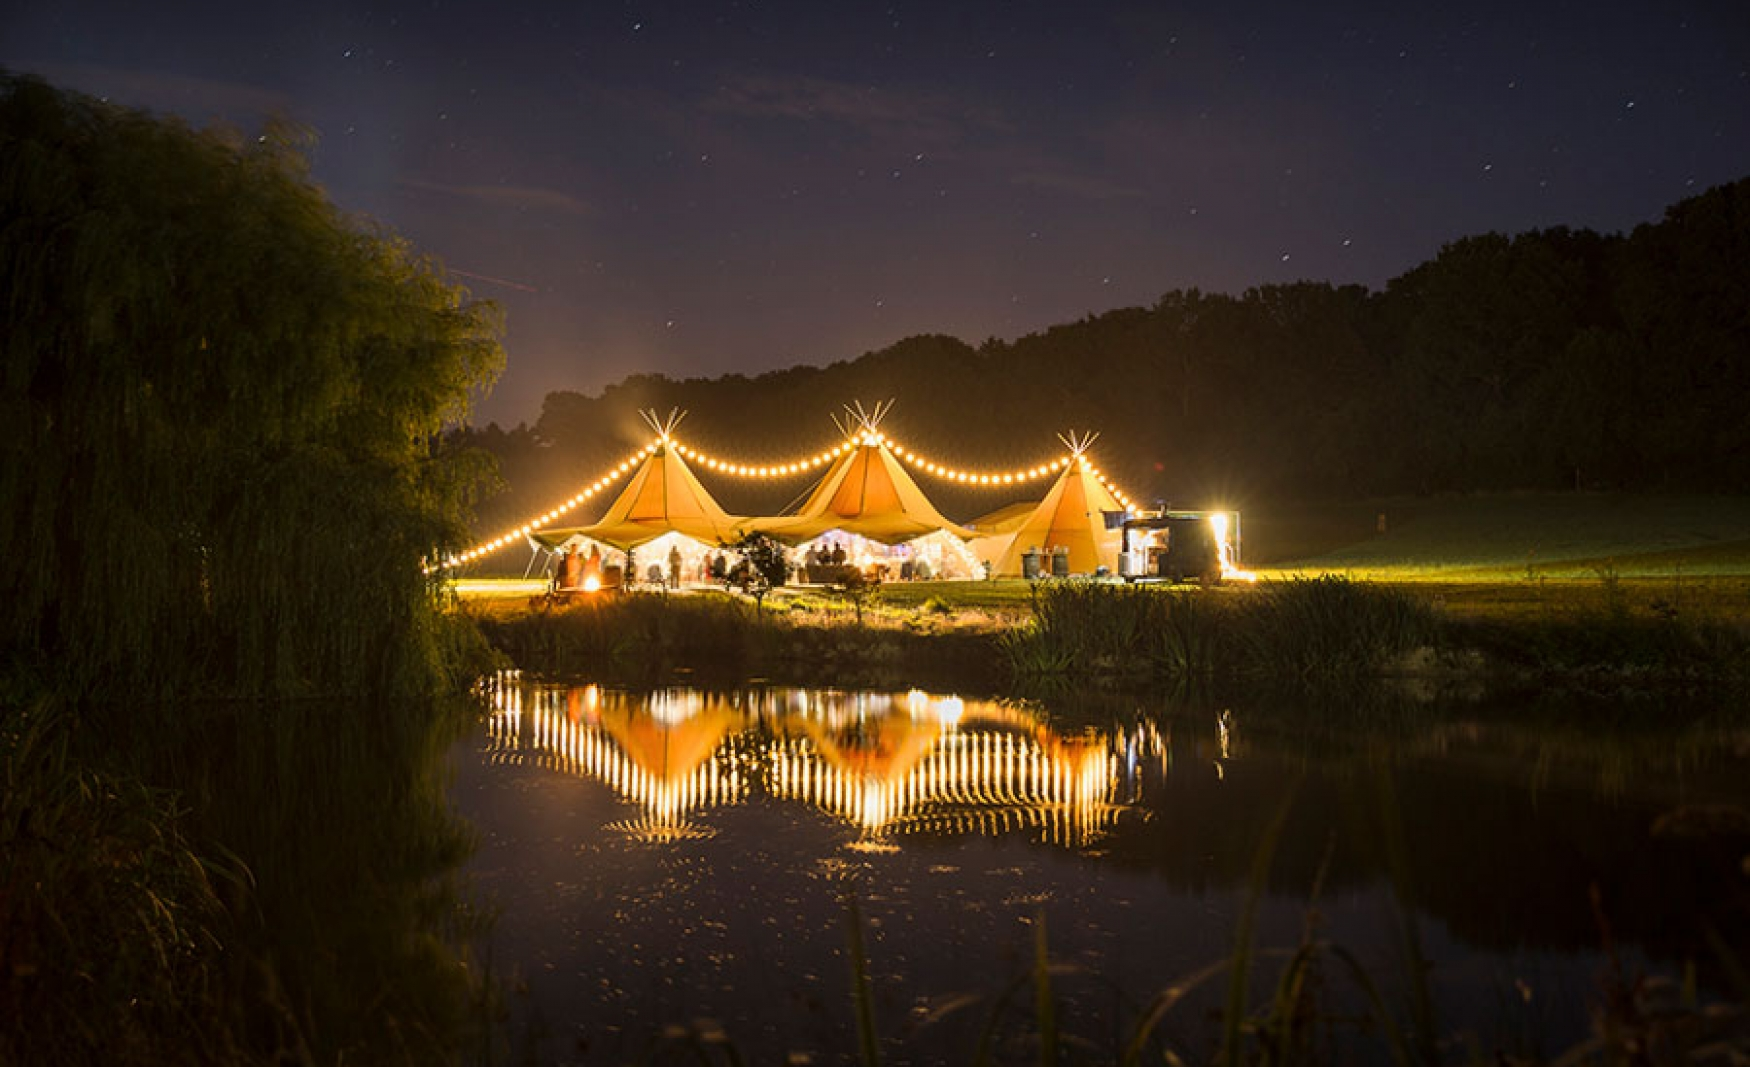 fiesta-fields-outdoor-wedding-events-company-tipi-surrey-sussex-maplehurst-farm-nuthurst-4